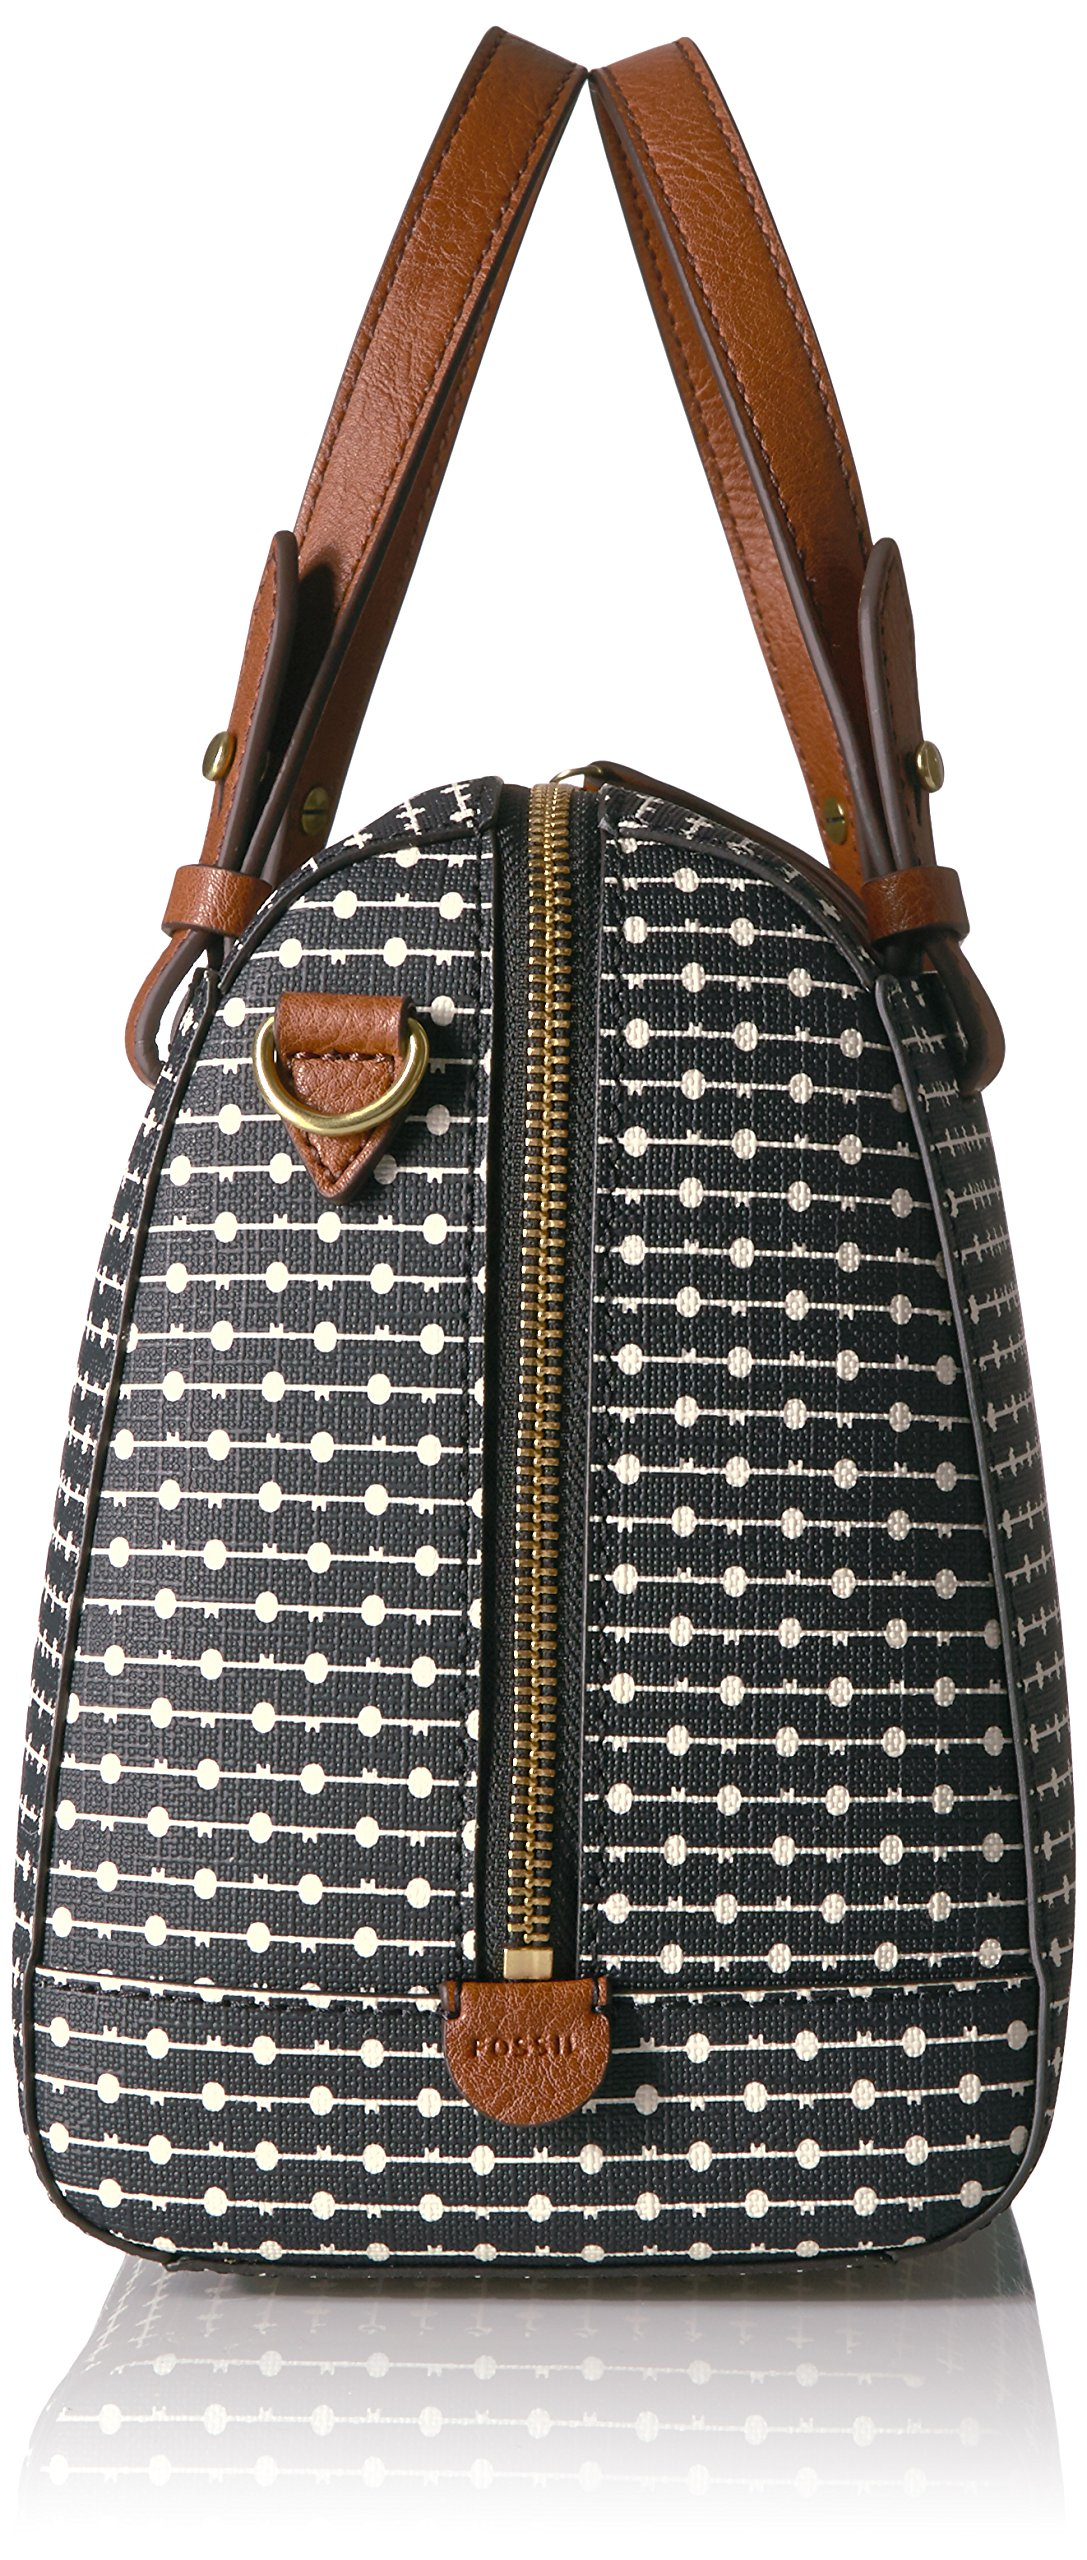 Fossil Rachel Satchel Handbag, Black Dot by Fossil (Image #3)